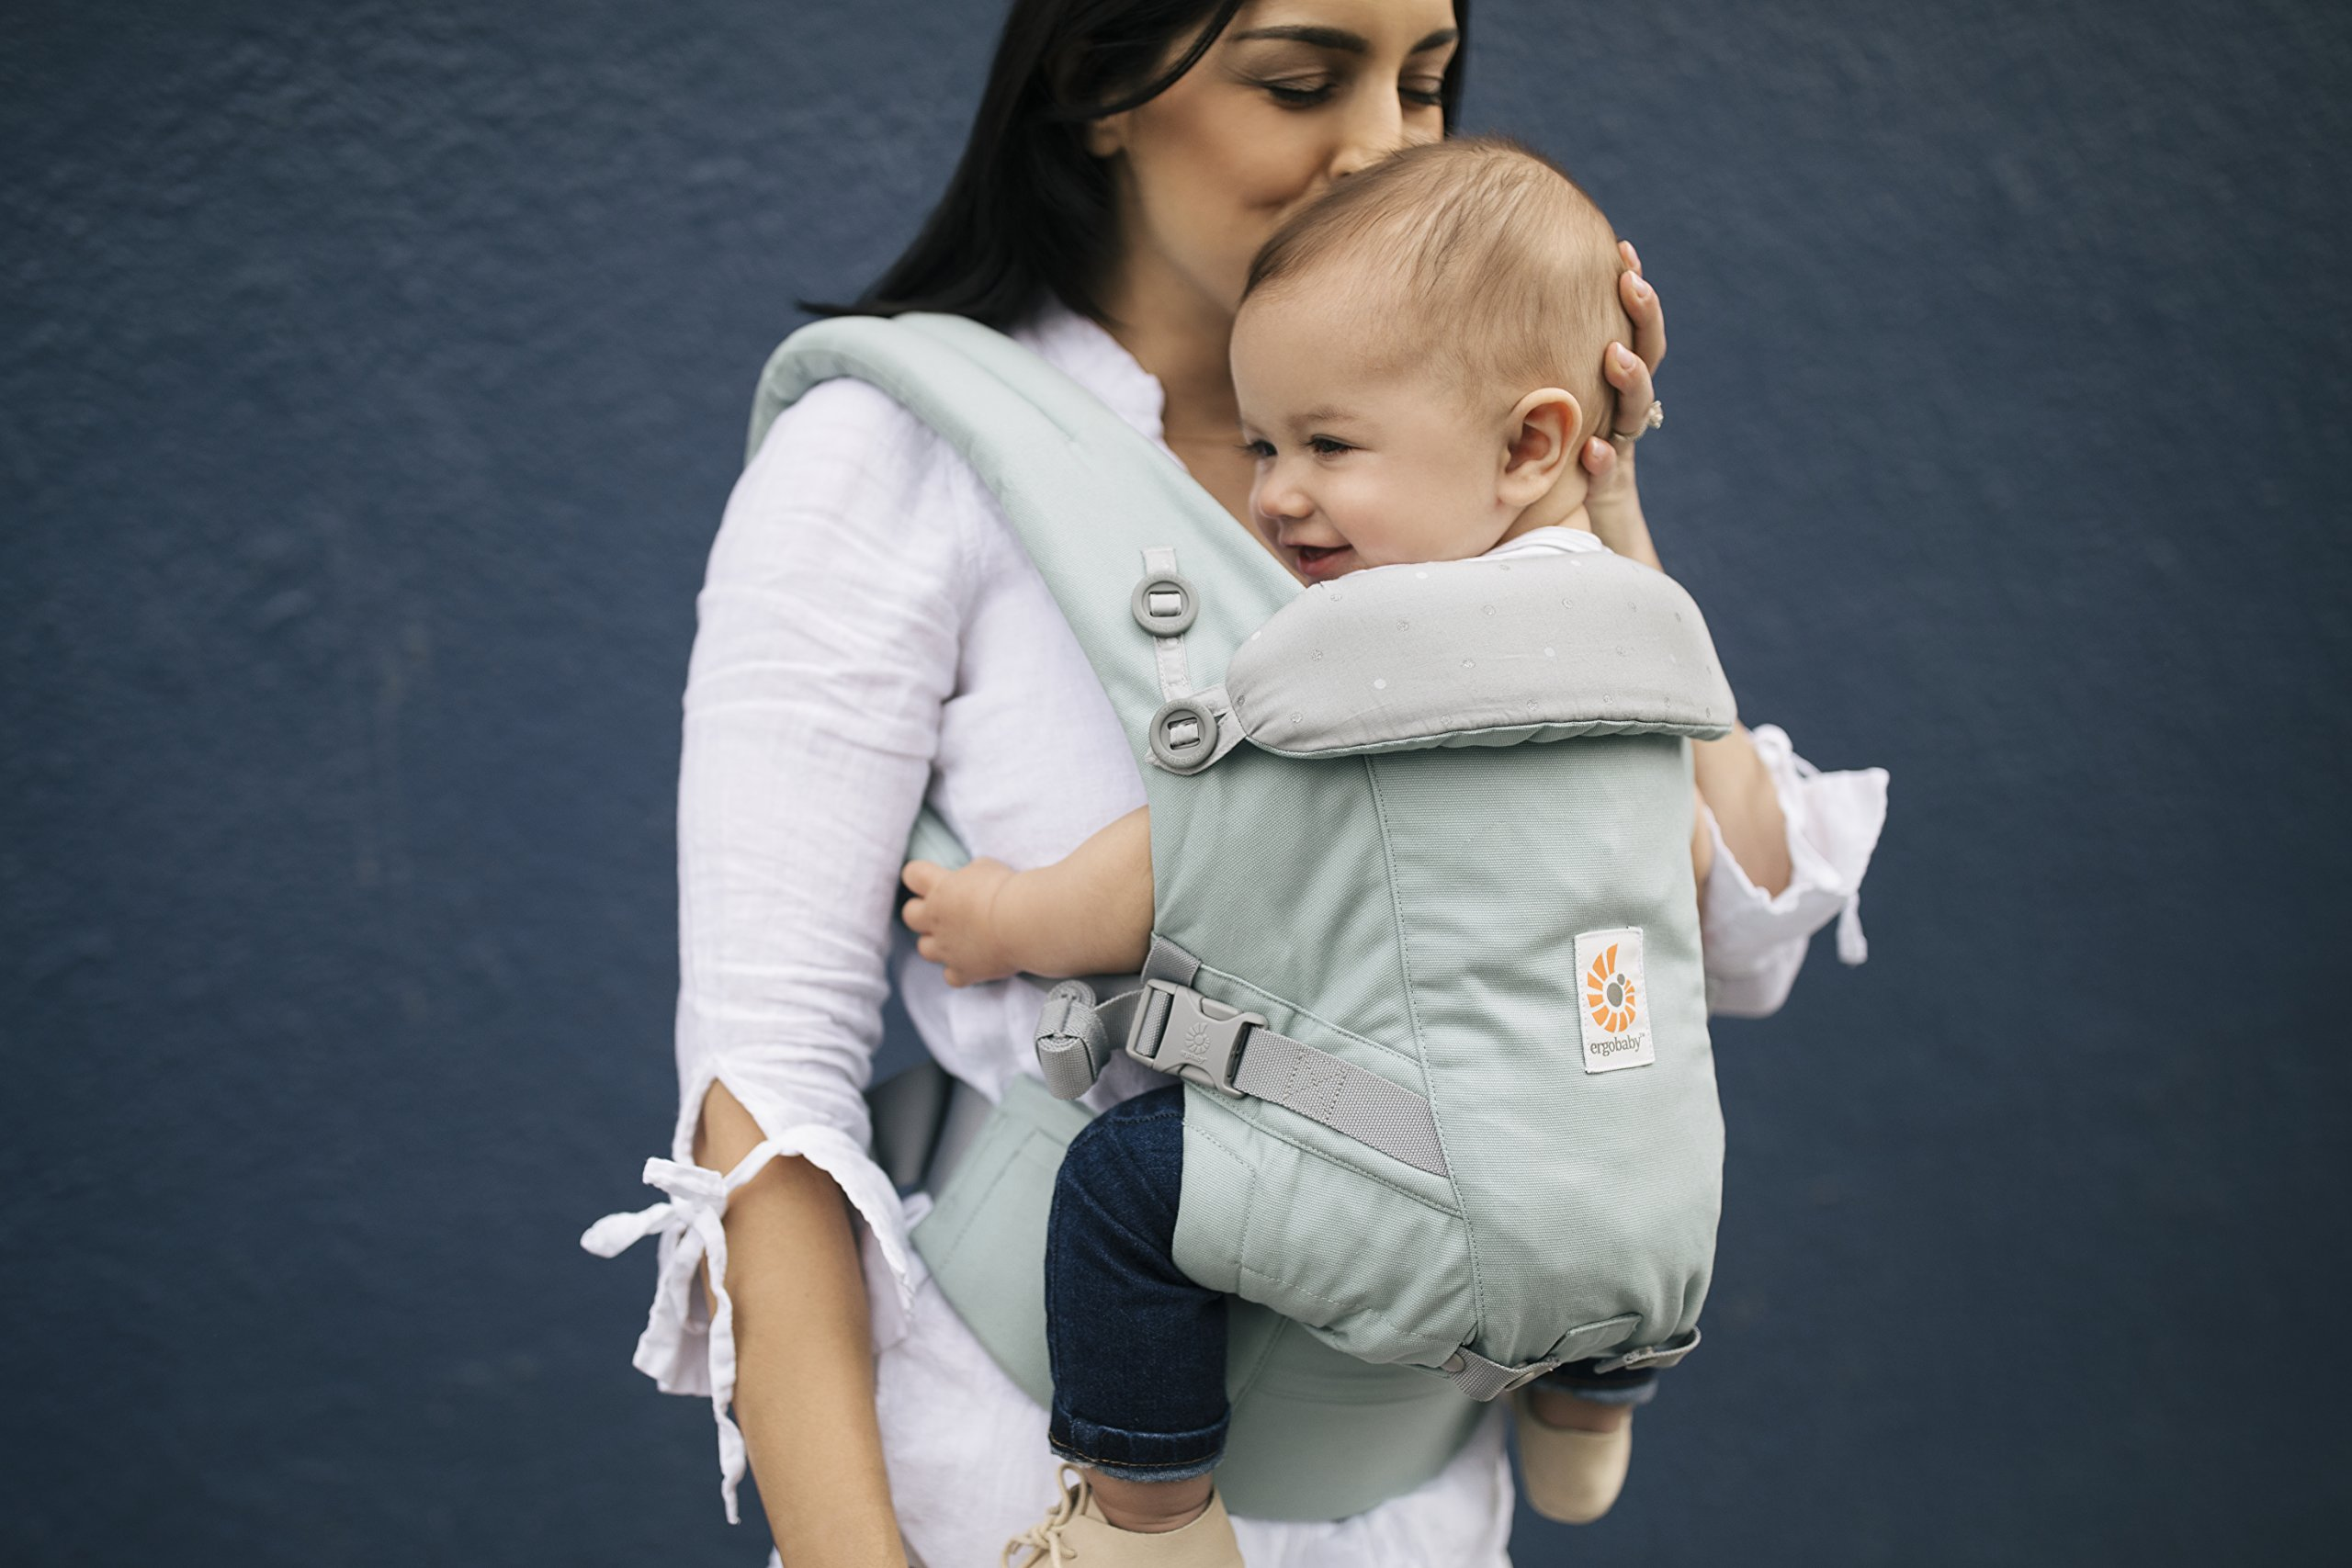 Ergobaby Baby Carrier for Newborn to Toddler up to 20kg, Adapt Frosted Mint 3-Position Ergonomic Child Carriers Front Backpack Ergobaby  3